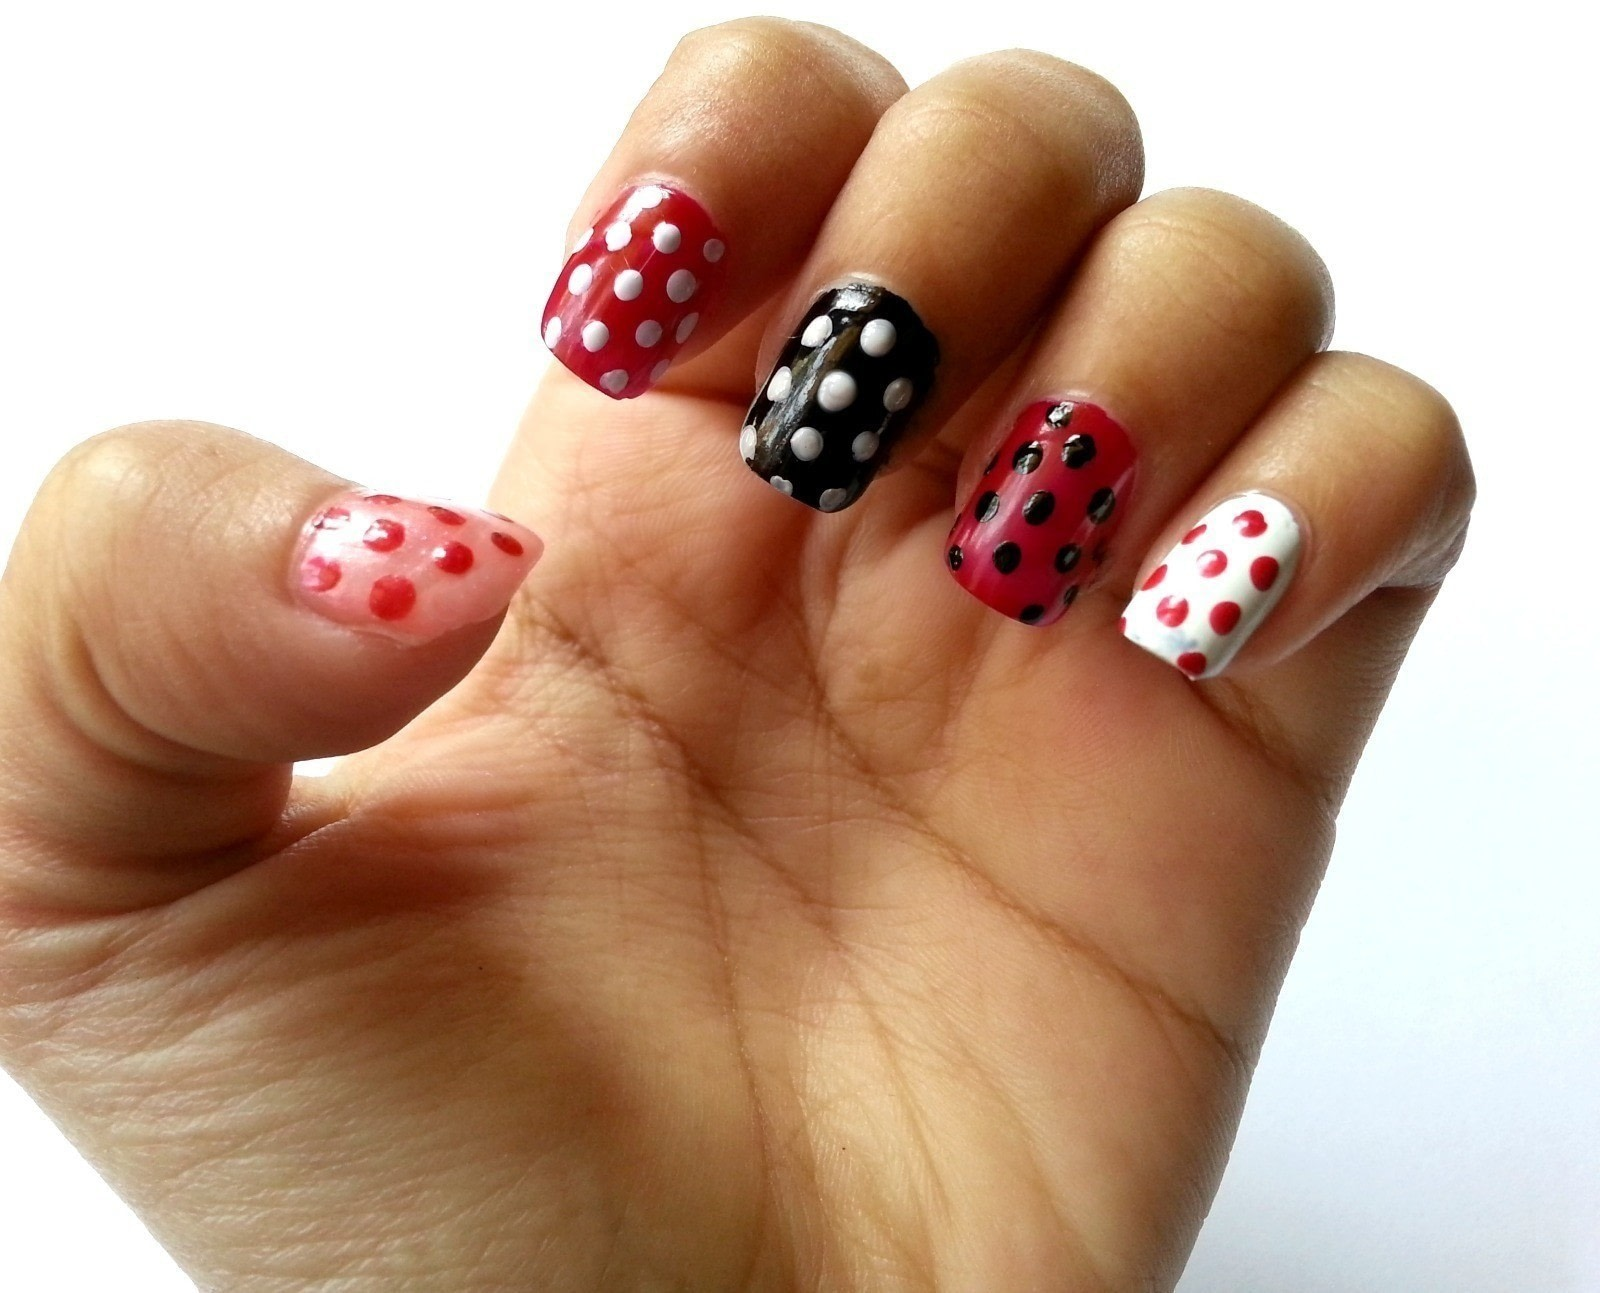 Diy Polka Dot Nail Art How To Paint Patterned Nail Art Beauty On